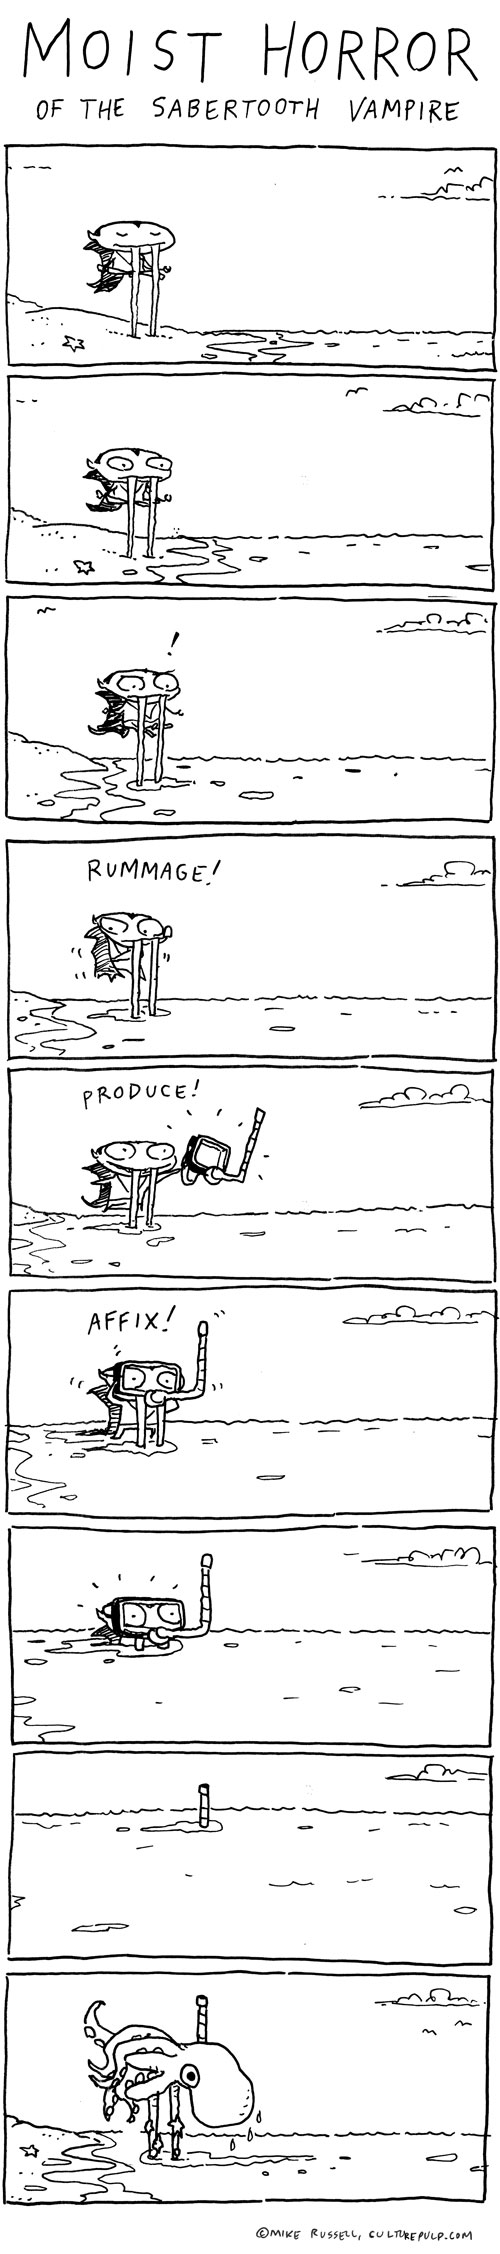 """Alternate titles I almost used for this strip: """"Dark Tide of the Sabertooth Vampire""""; """"Watery Tomb of the Sabertooth Vampire""""; """"Dread Fathoms of the Sabertooth Vampire""""; and """"Ebb and Flow of the Sabertooth Vampire."""" All these titles enjoy the distinct advantage of not containing the word """"moist"""""""